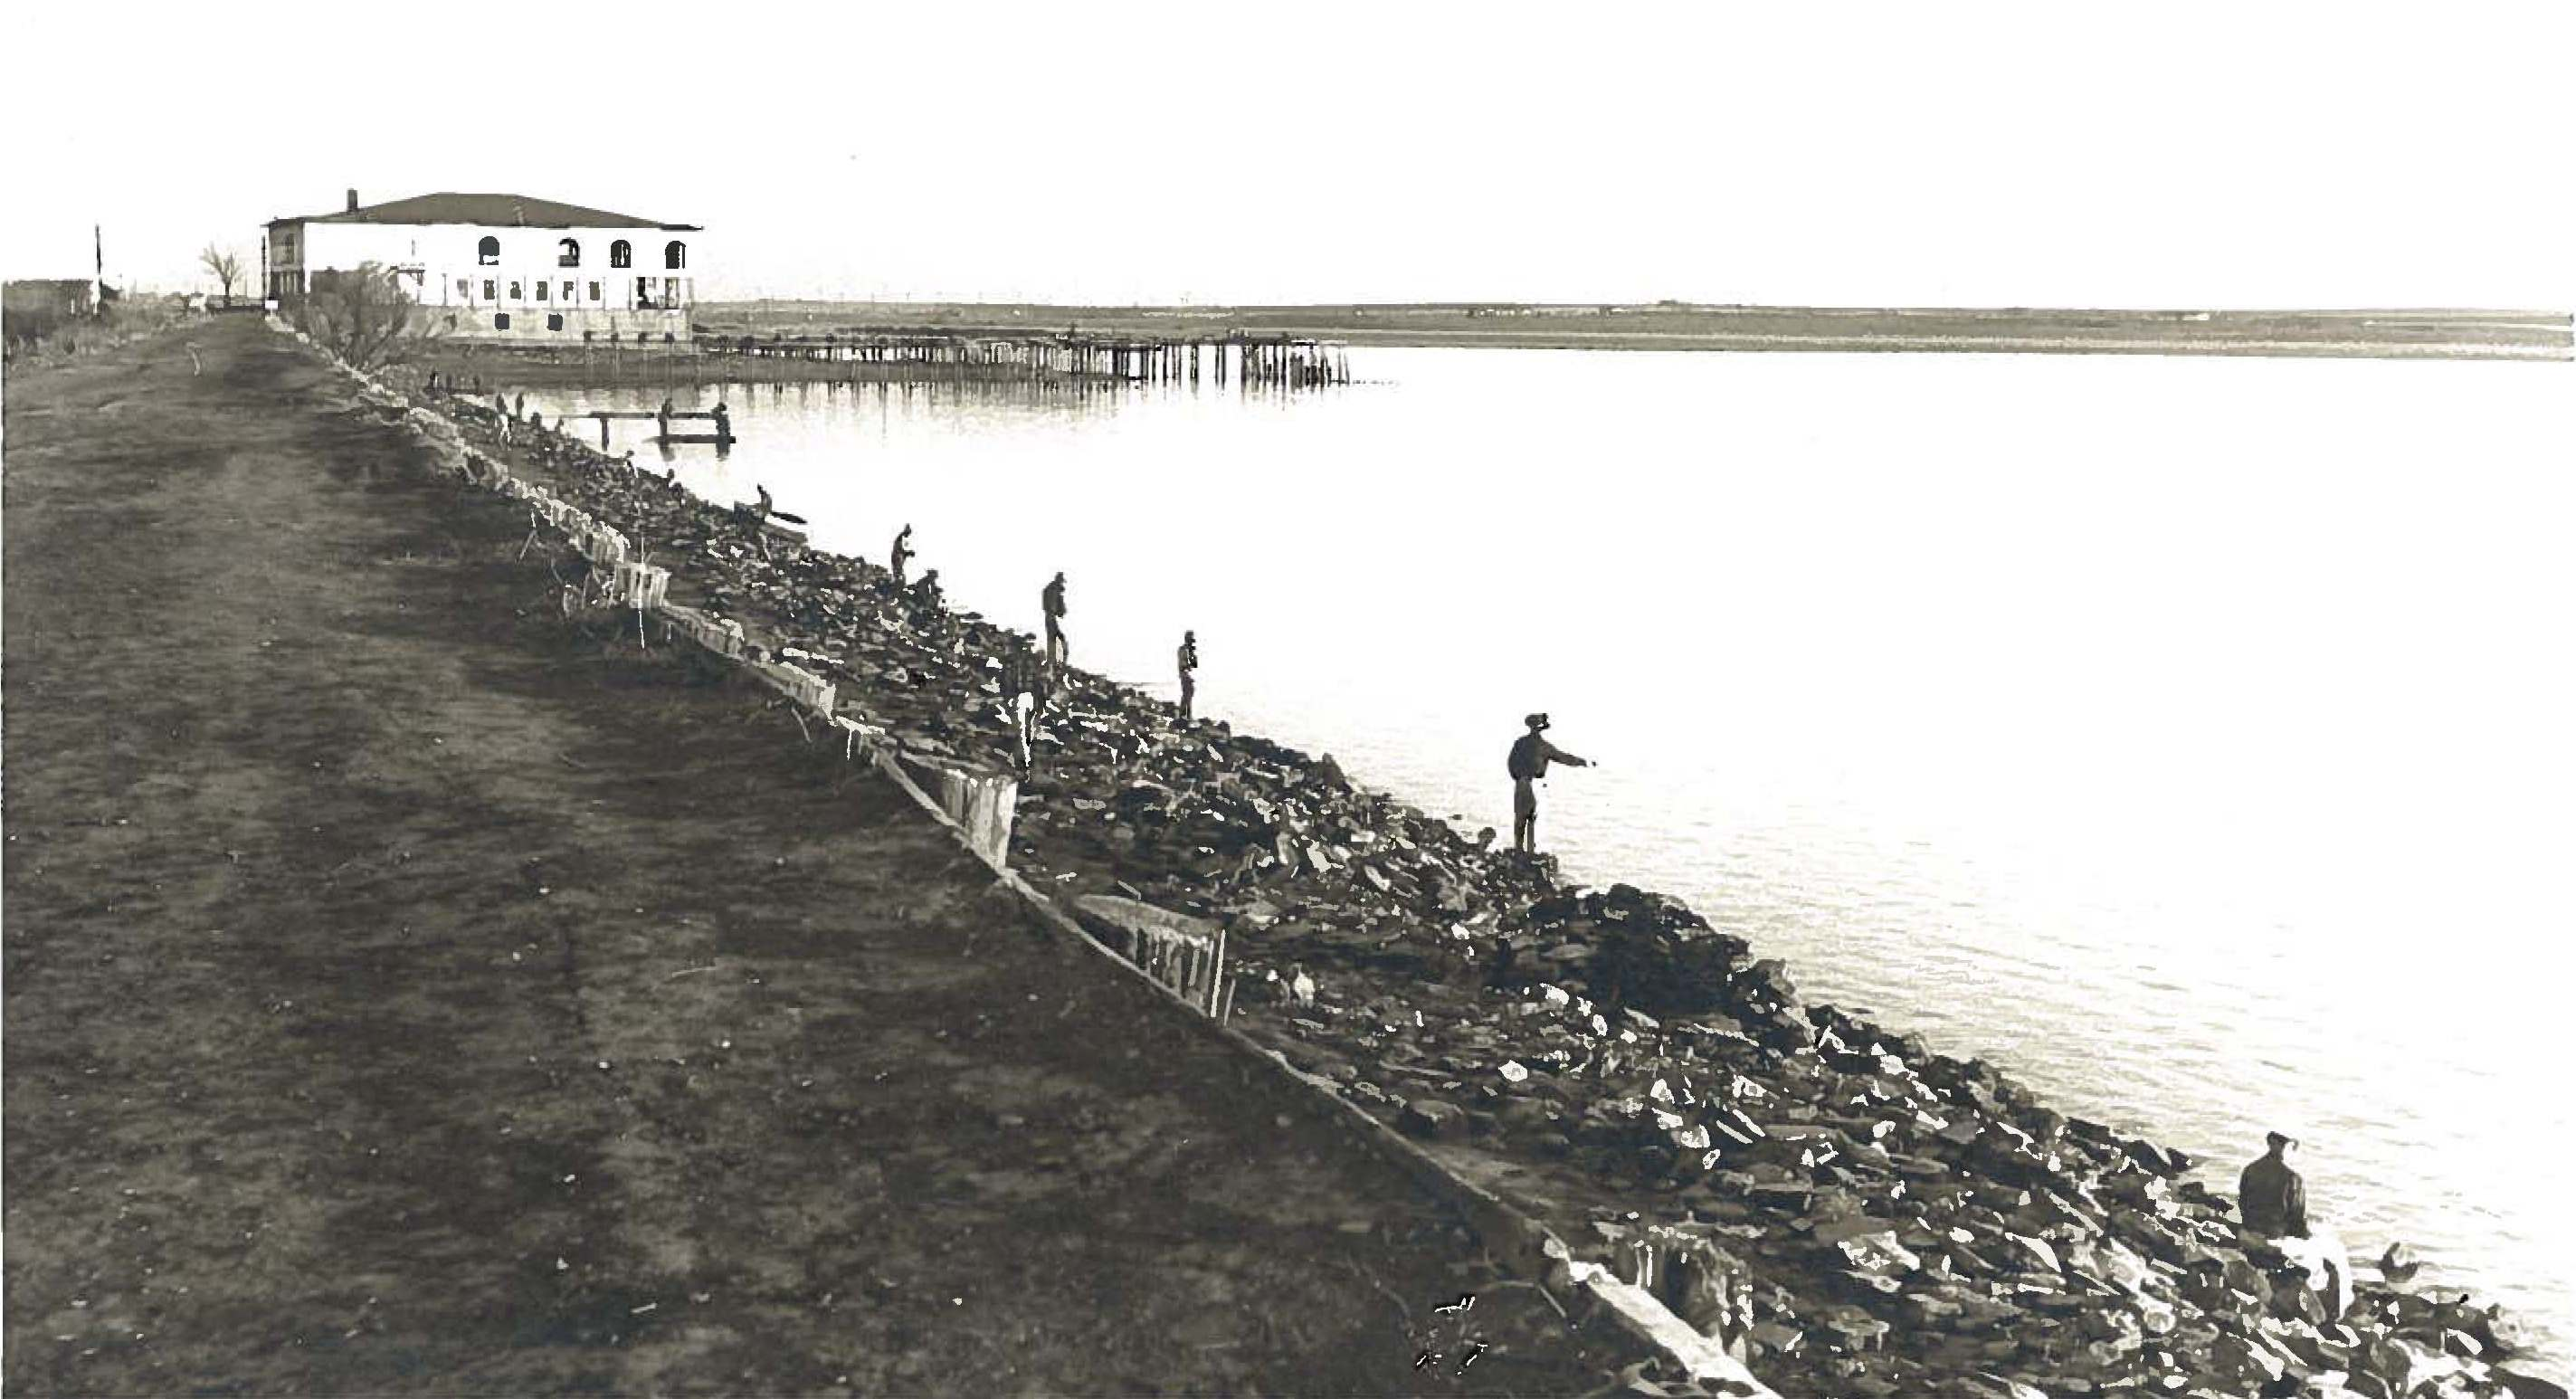 lake wichita photo2.jpg